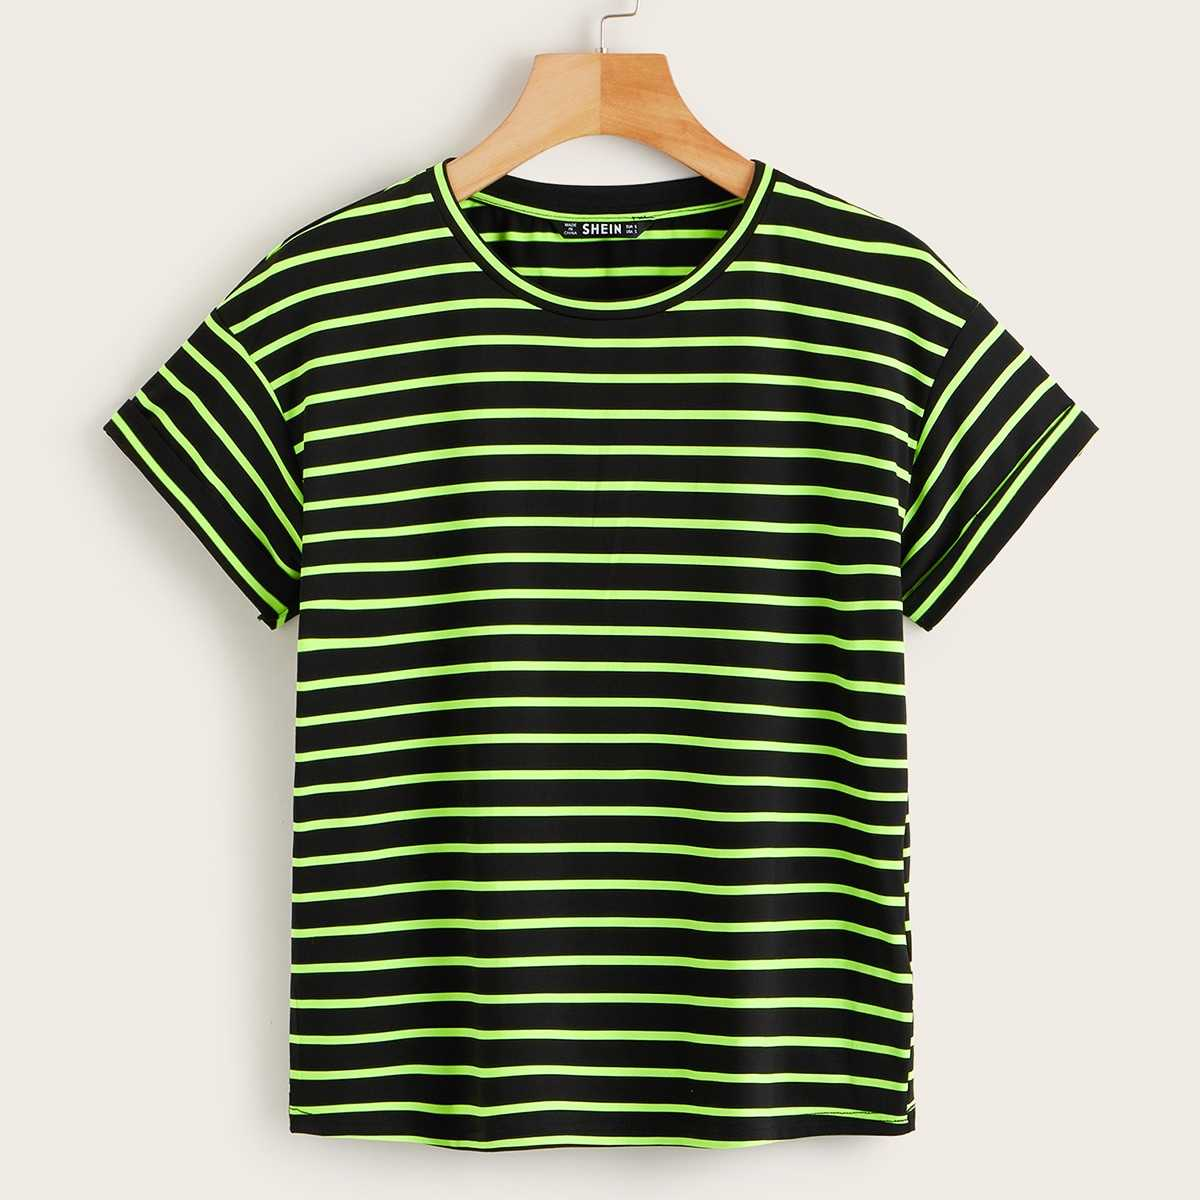 Drop Shoulder Neon Striped Tee in Multicolor Bright by ROMWE on GOOFASH